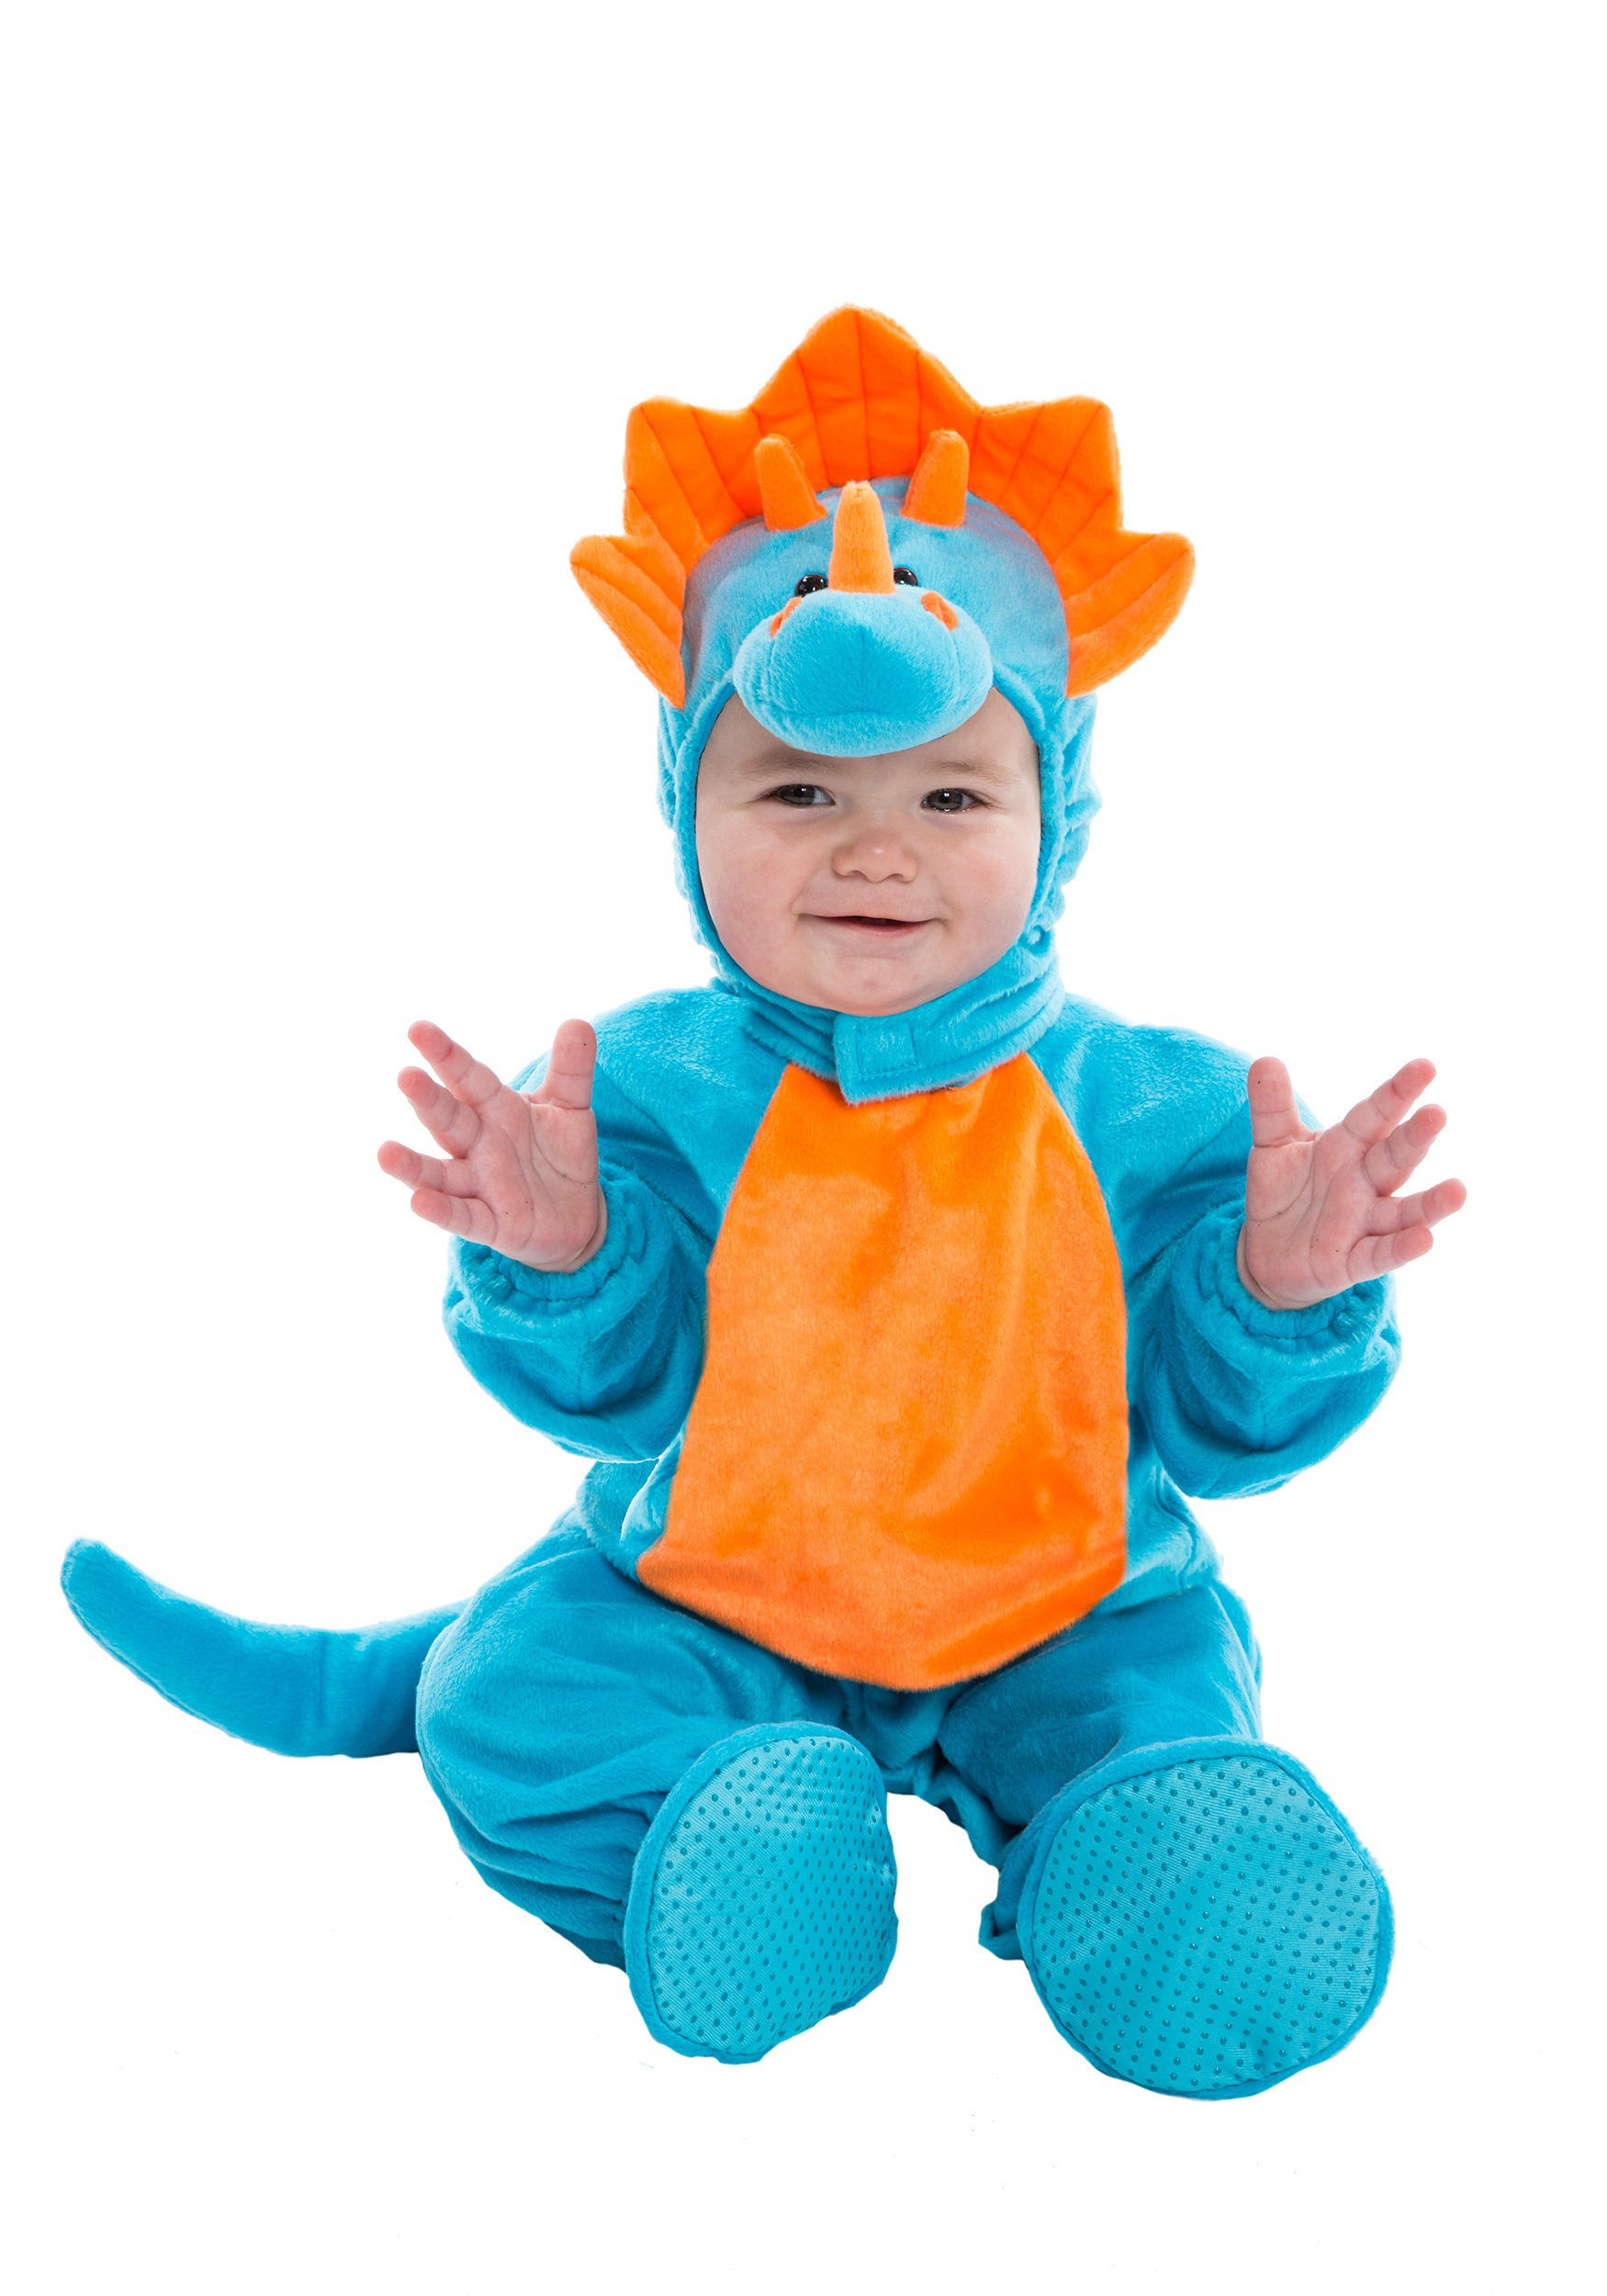 Dinosaur Costumes Kids Toddler Dinosaur Halloween Costume